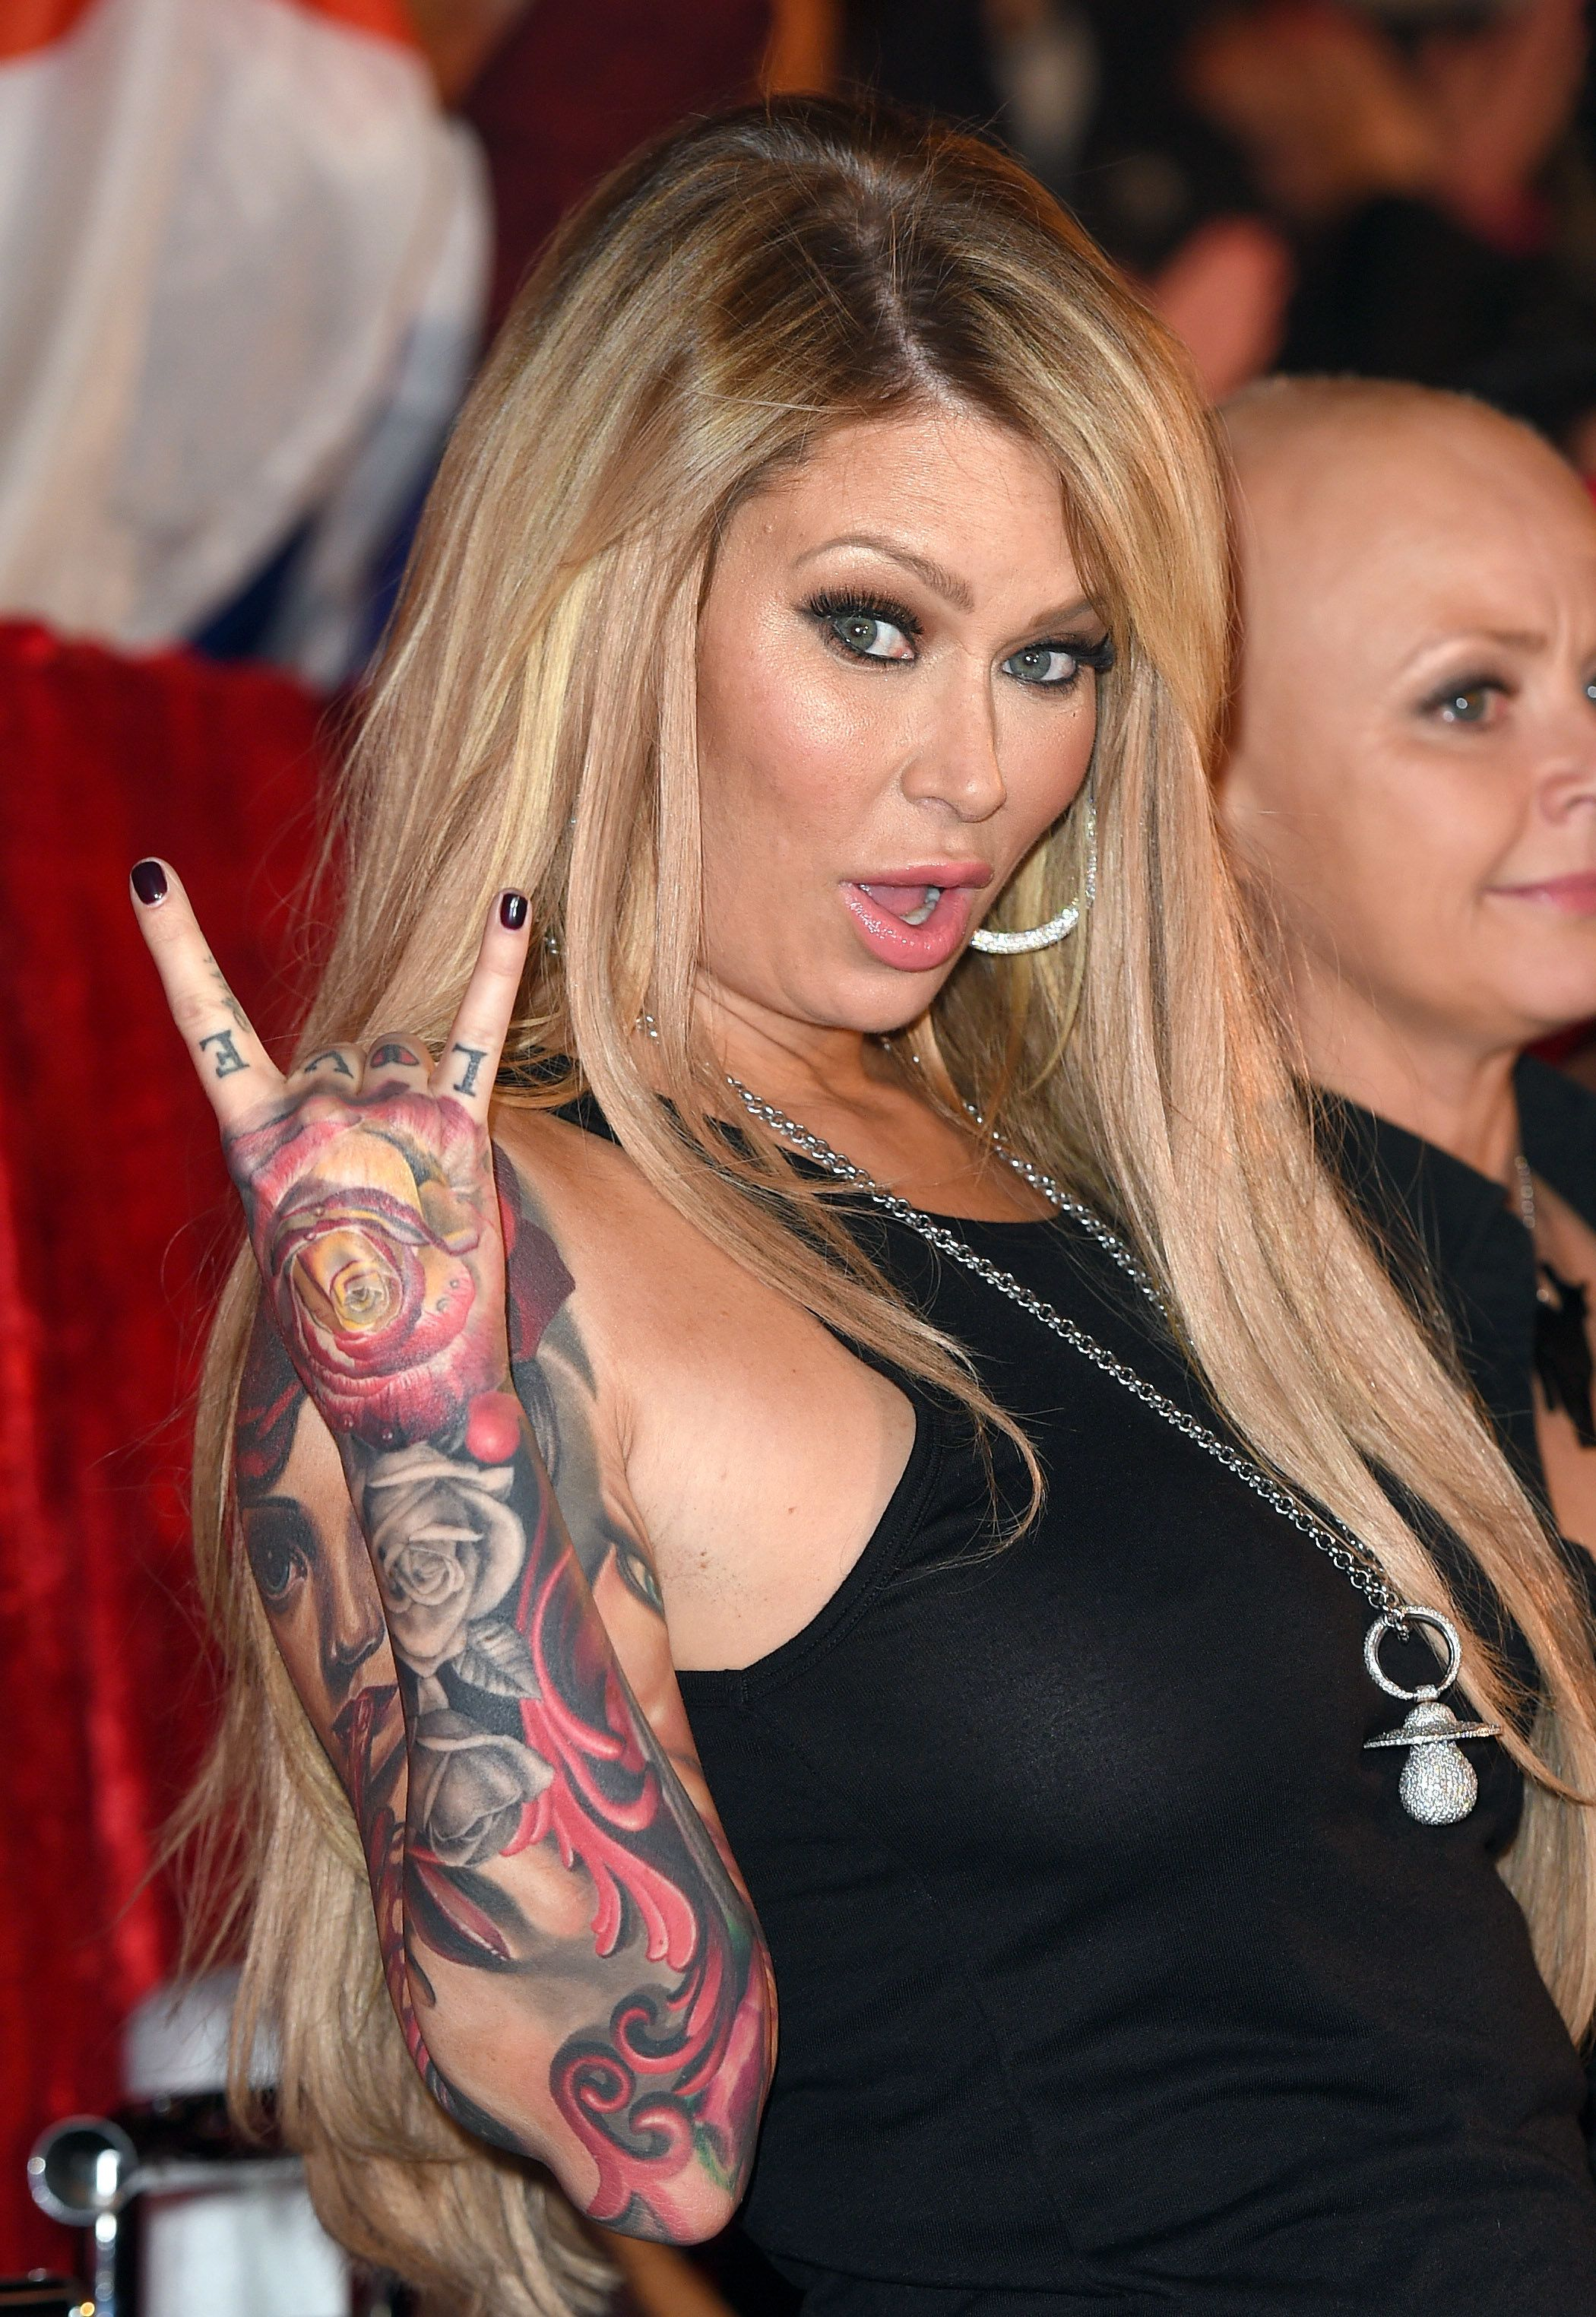 BOREHAMWOOD, ENGLAND - SEPTEMBER 24:  Jenna Jameson attends the Celebrity Big Brother Final at Elstree Studios on September 24, 2015 in Borehamwood, England.  (Photo by Karwai Tang/WireImage)